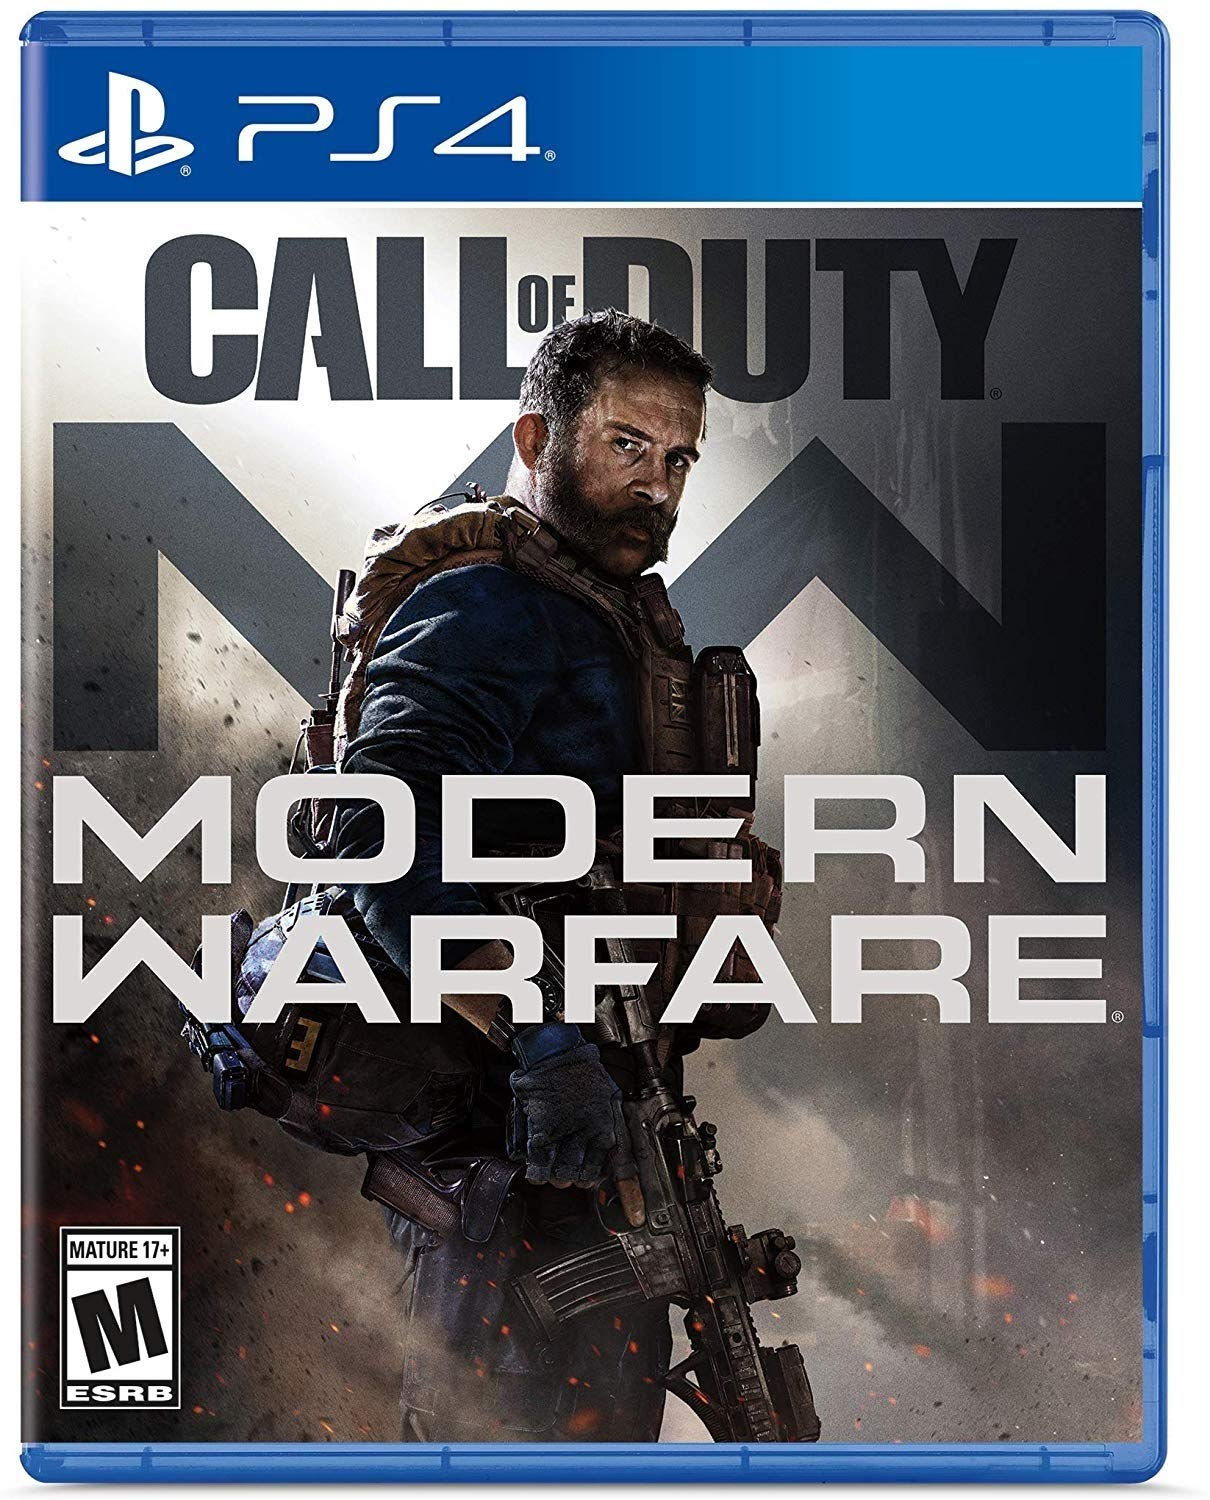 Call Of Duty Modern Warfare Playstation 4 Activision Inc Video Games